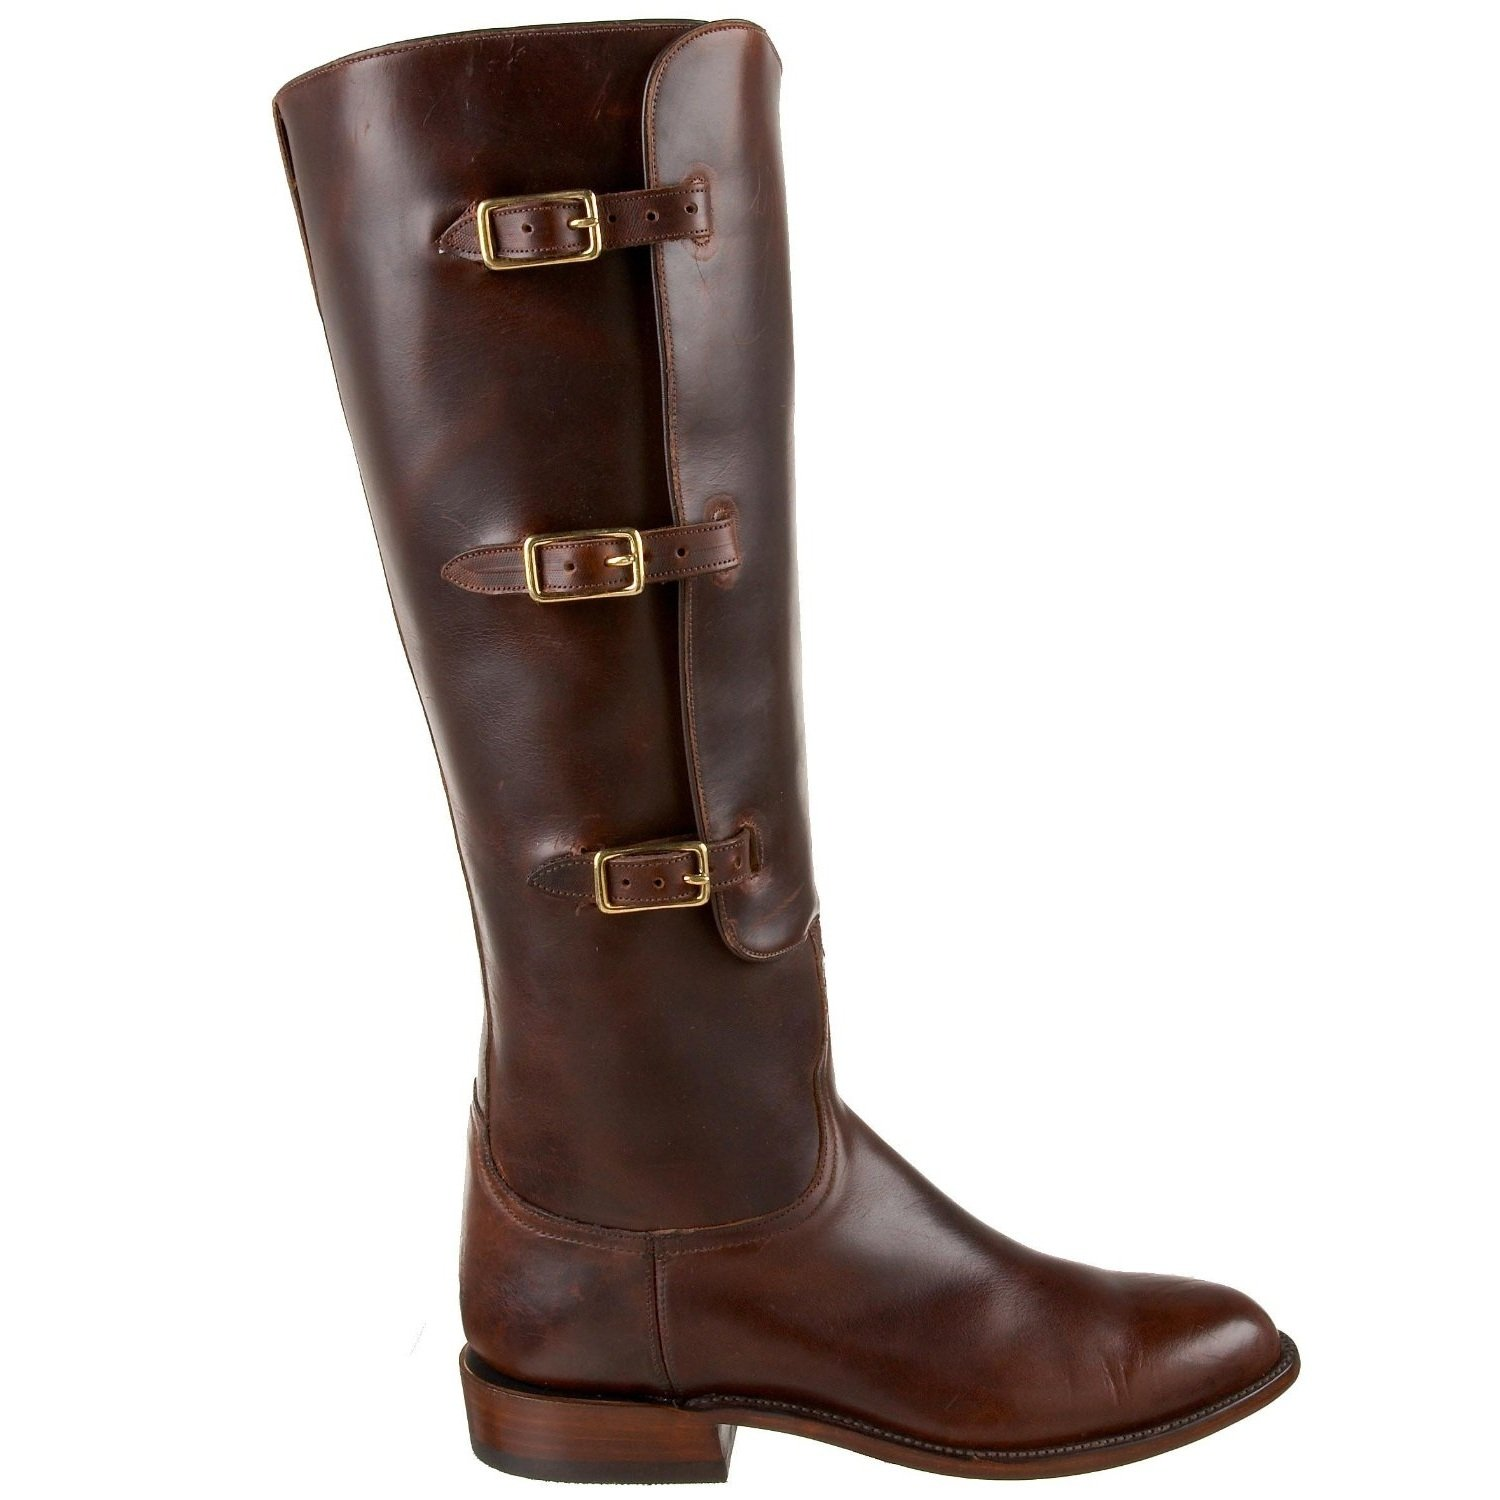 Lucchese Classics Lieutenant Polo Riding Boot - Chocolate - US 9